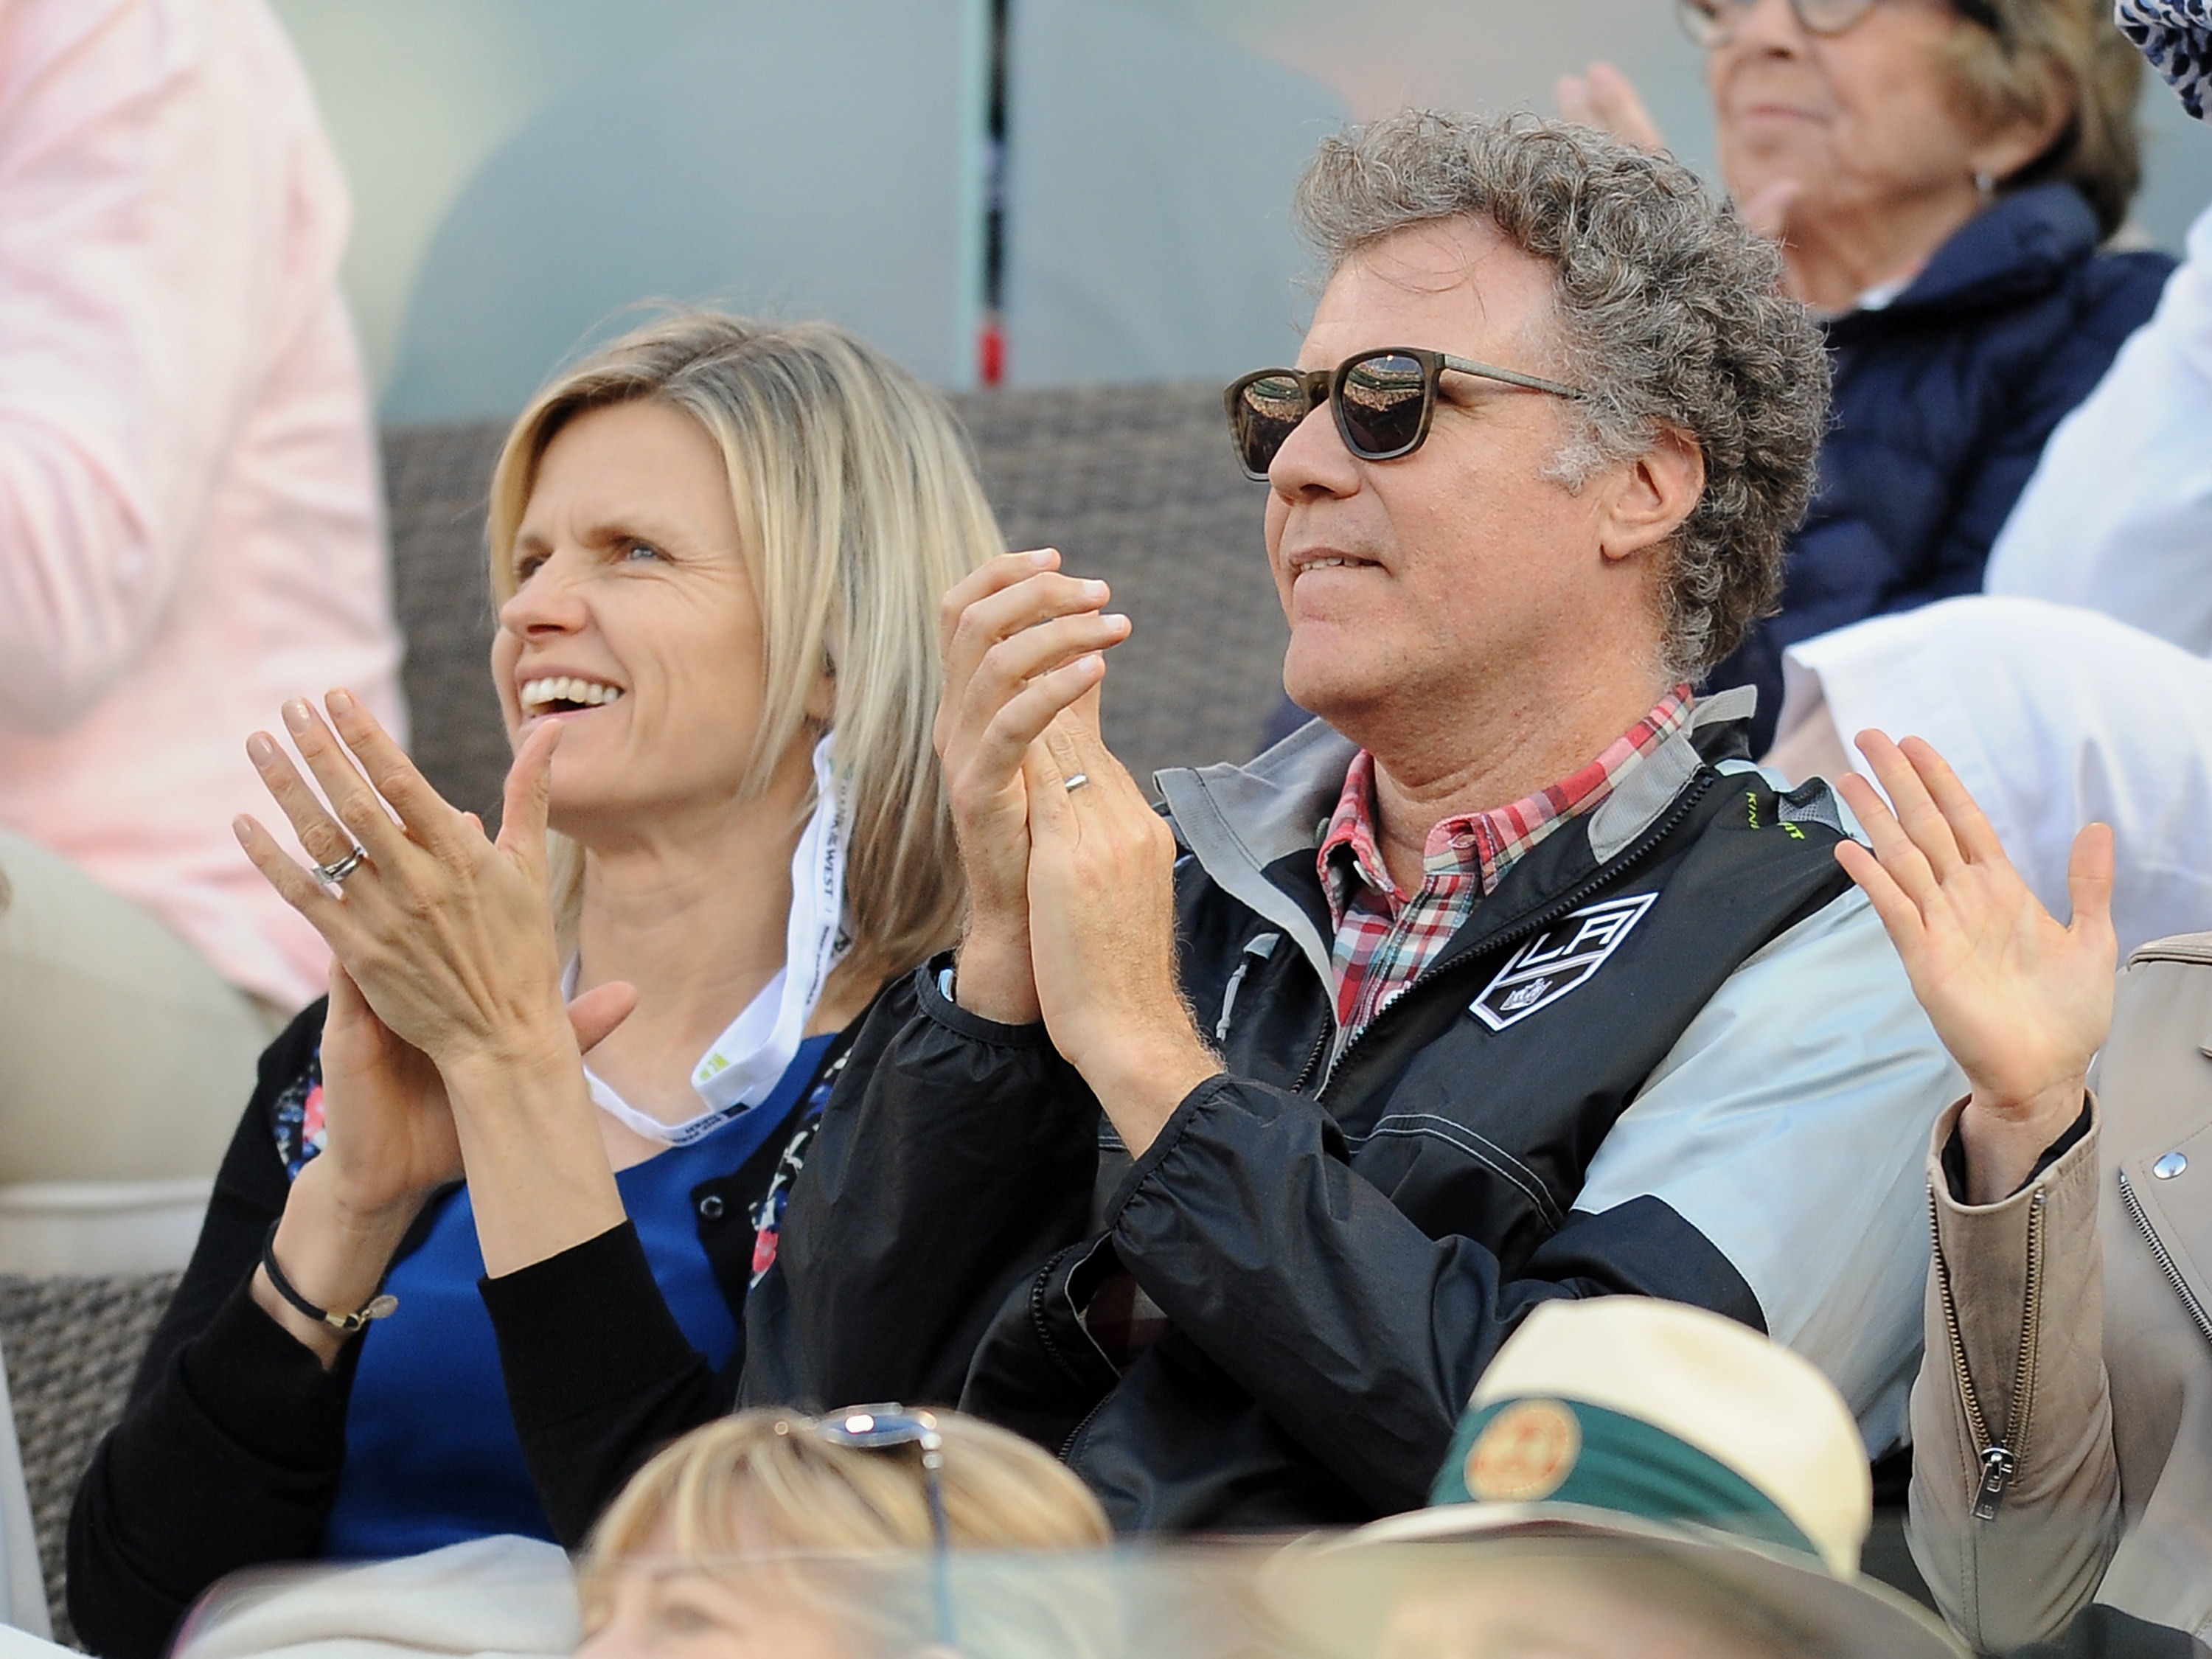 clapping at a tennis match